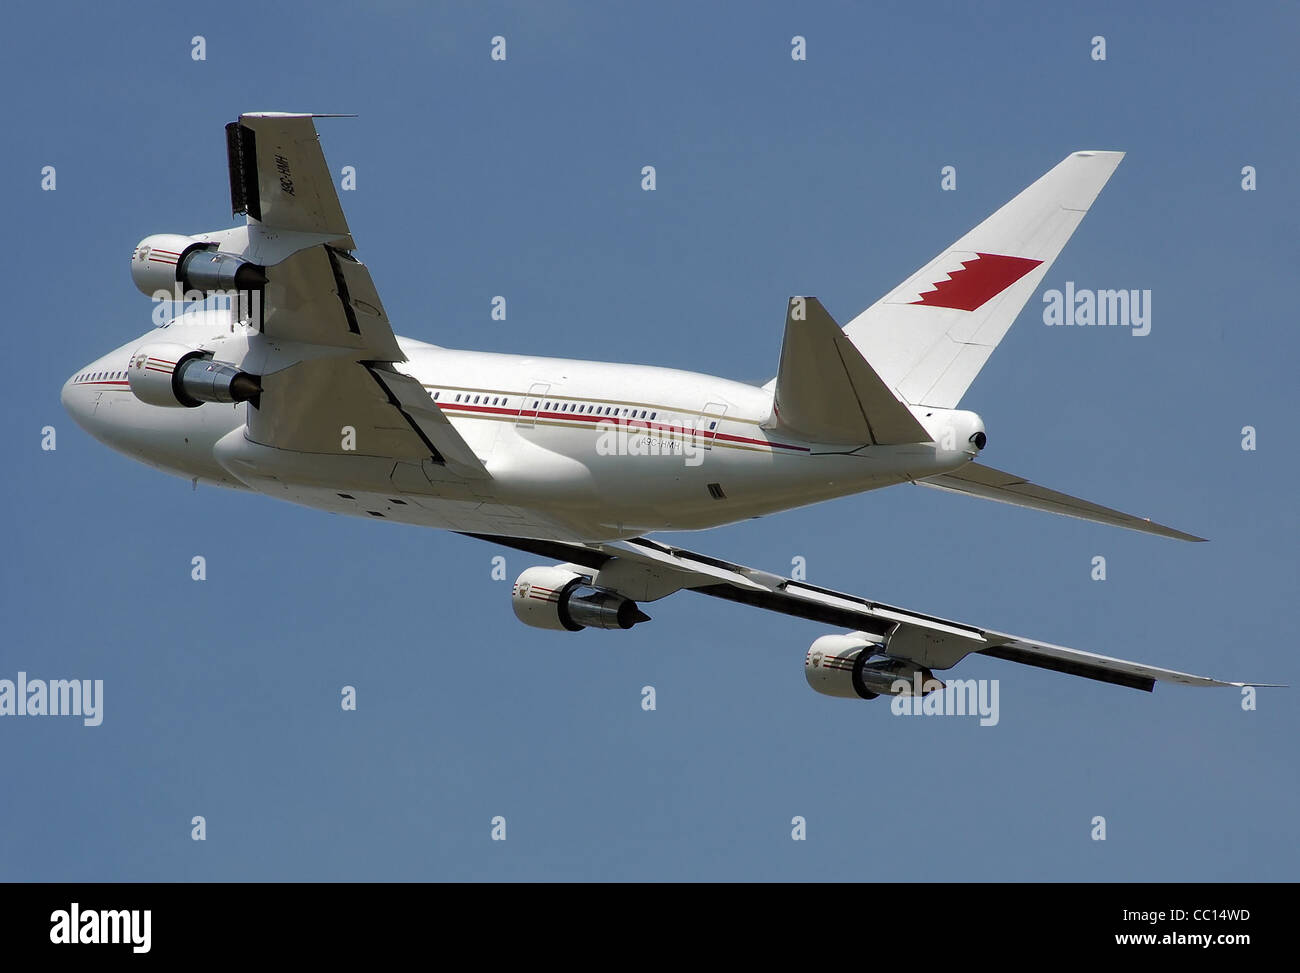 Bahrain Royal Flight Boeing 747SP-21 (A9C-HMH) taking off from London Heathrow Airport. - Stock Image